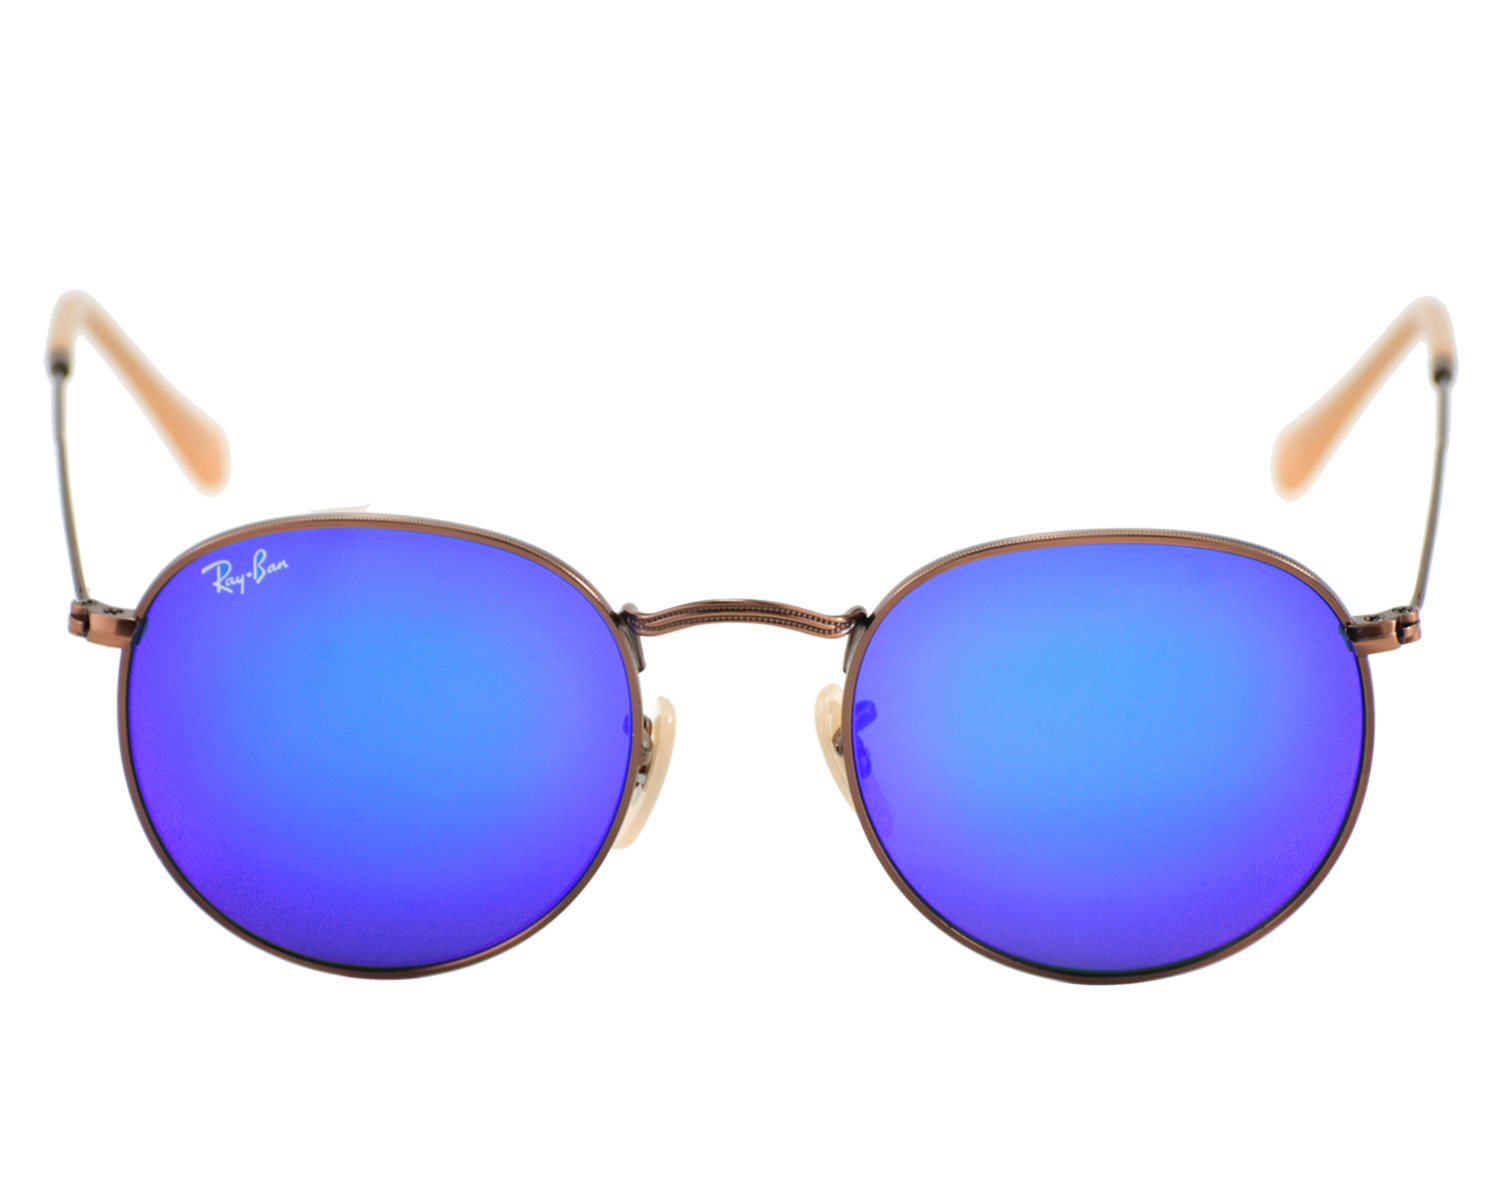 3bf0bccf73 ... purple mirror rb3447 167 1m bronze 61ff3 4e6f4  sweden ray ban rb3347  round flash lenses 167 68 bronze copper frames blue mirror lenses unisex